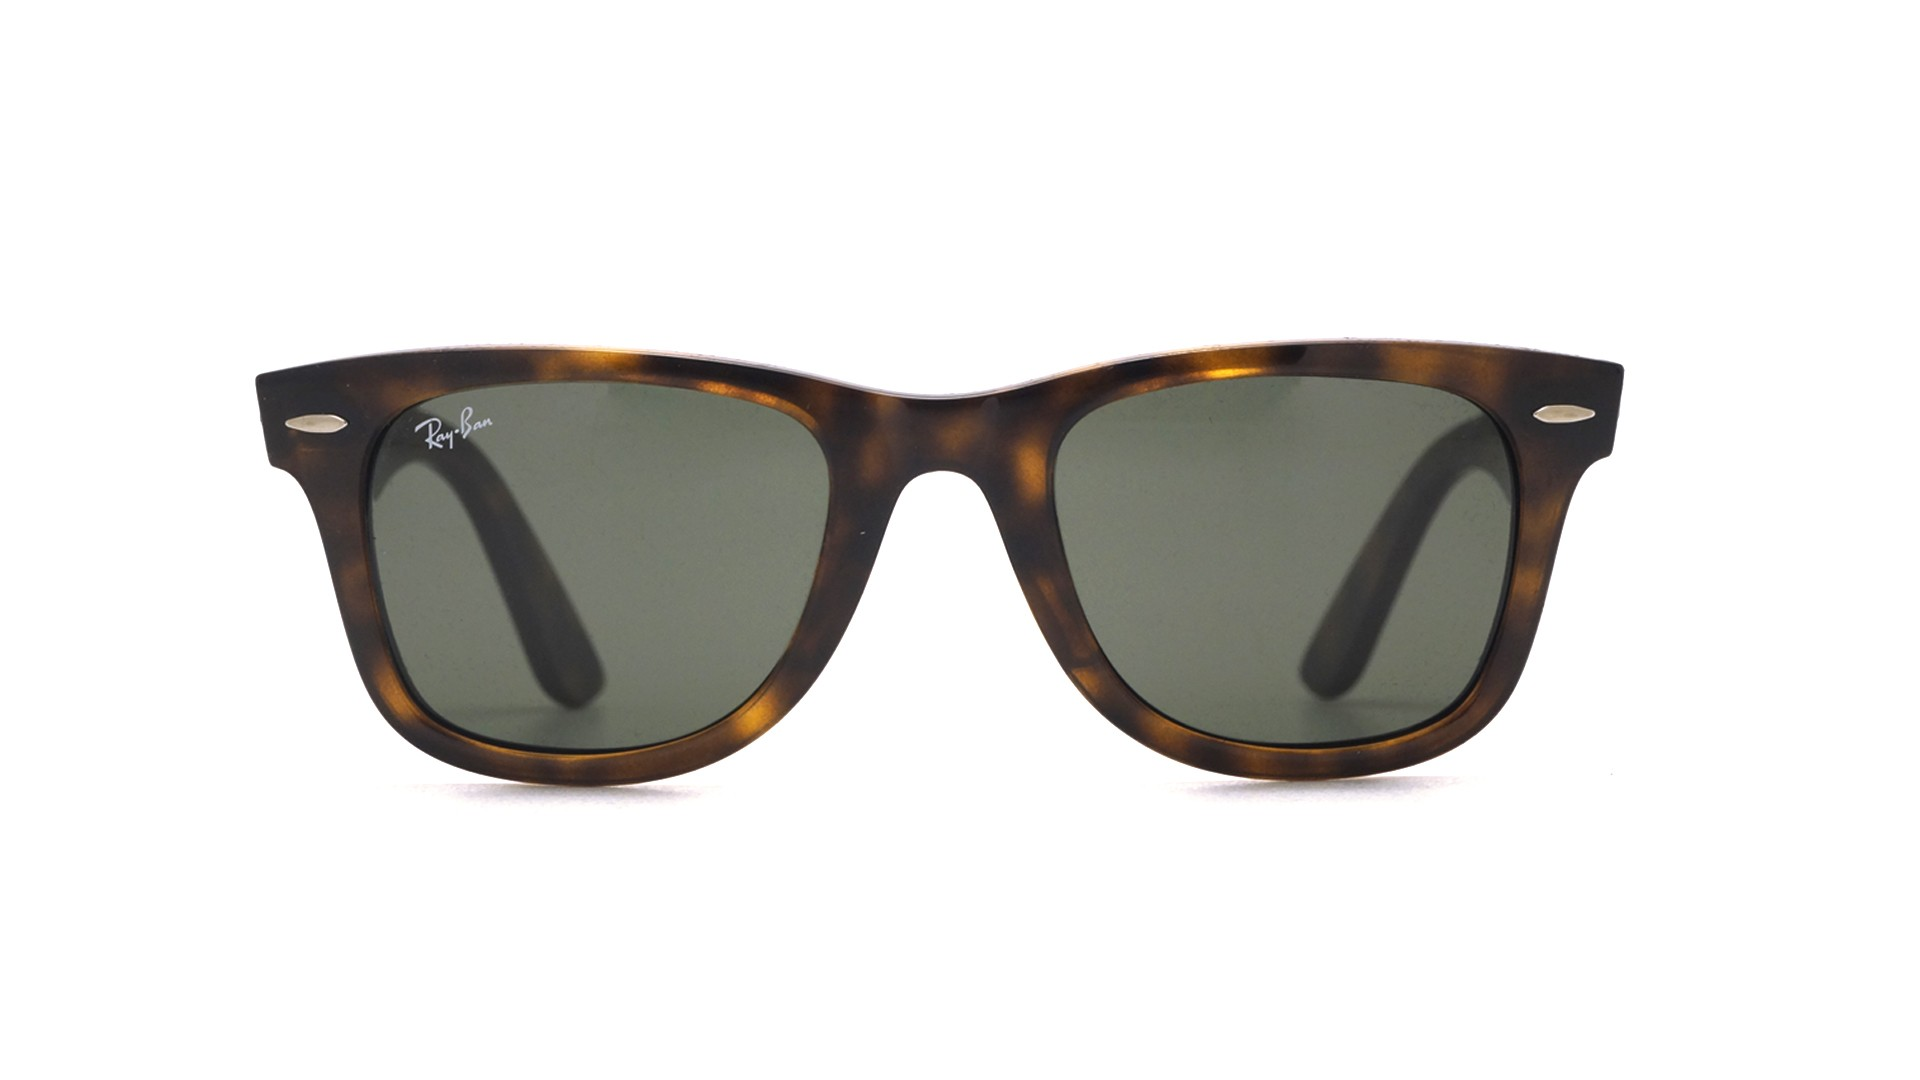 Meet the Ray-Ban New Wayfarer Sunglasses